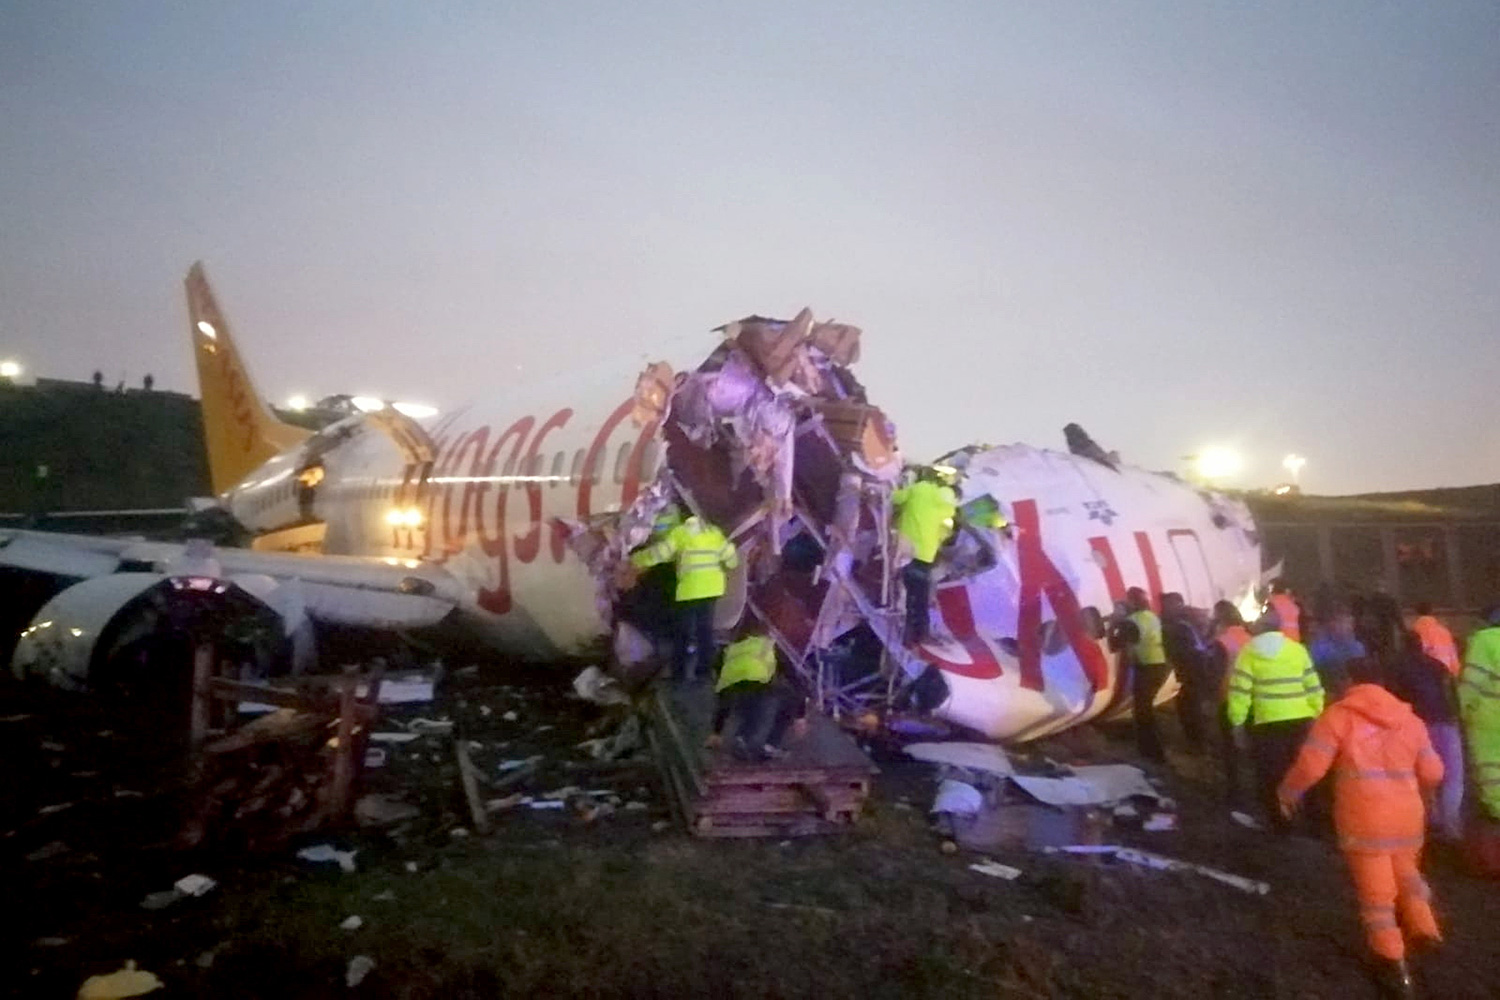 Officials work around the site after a passenger plane skidded off the runway in Istanbul Sabiha Gokcen International Airport, breaking into two, on February 05, 2020 in Istanbul, Turkey. Several firefighters and paramedics were dispatched to the area